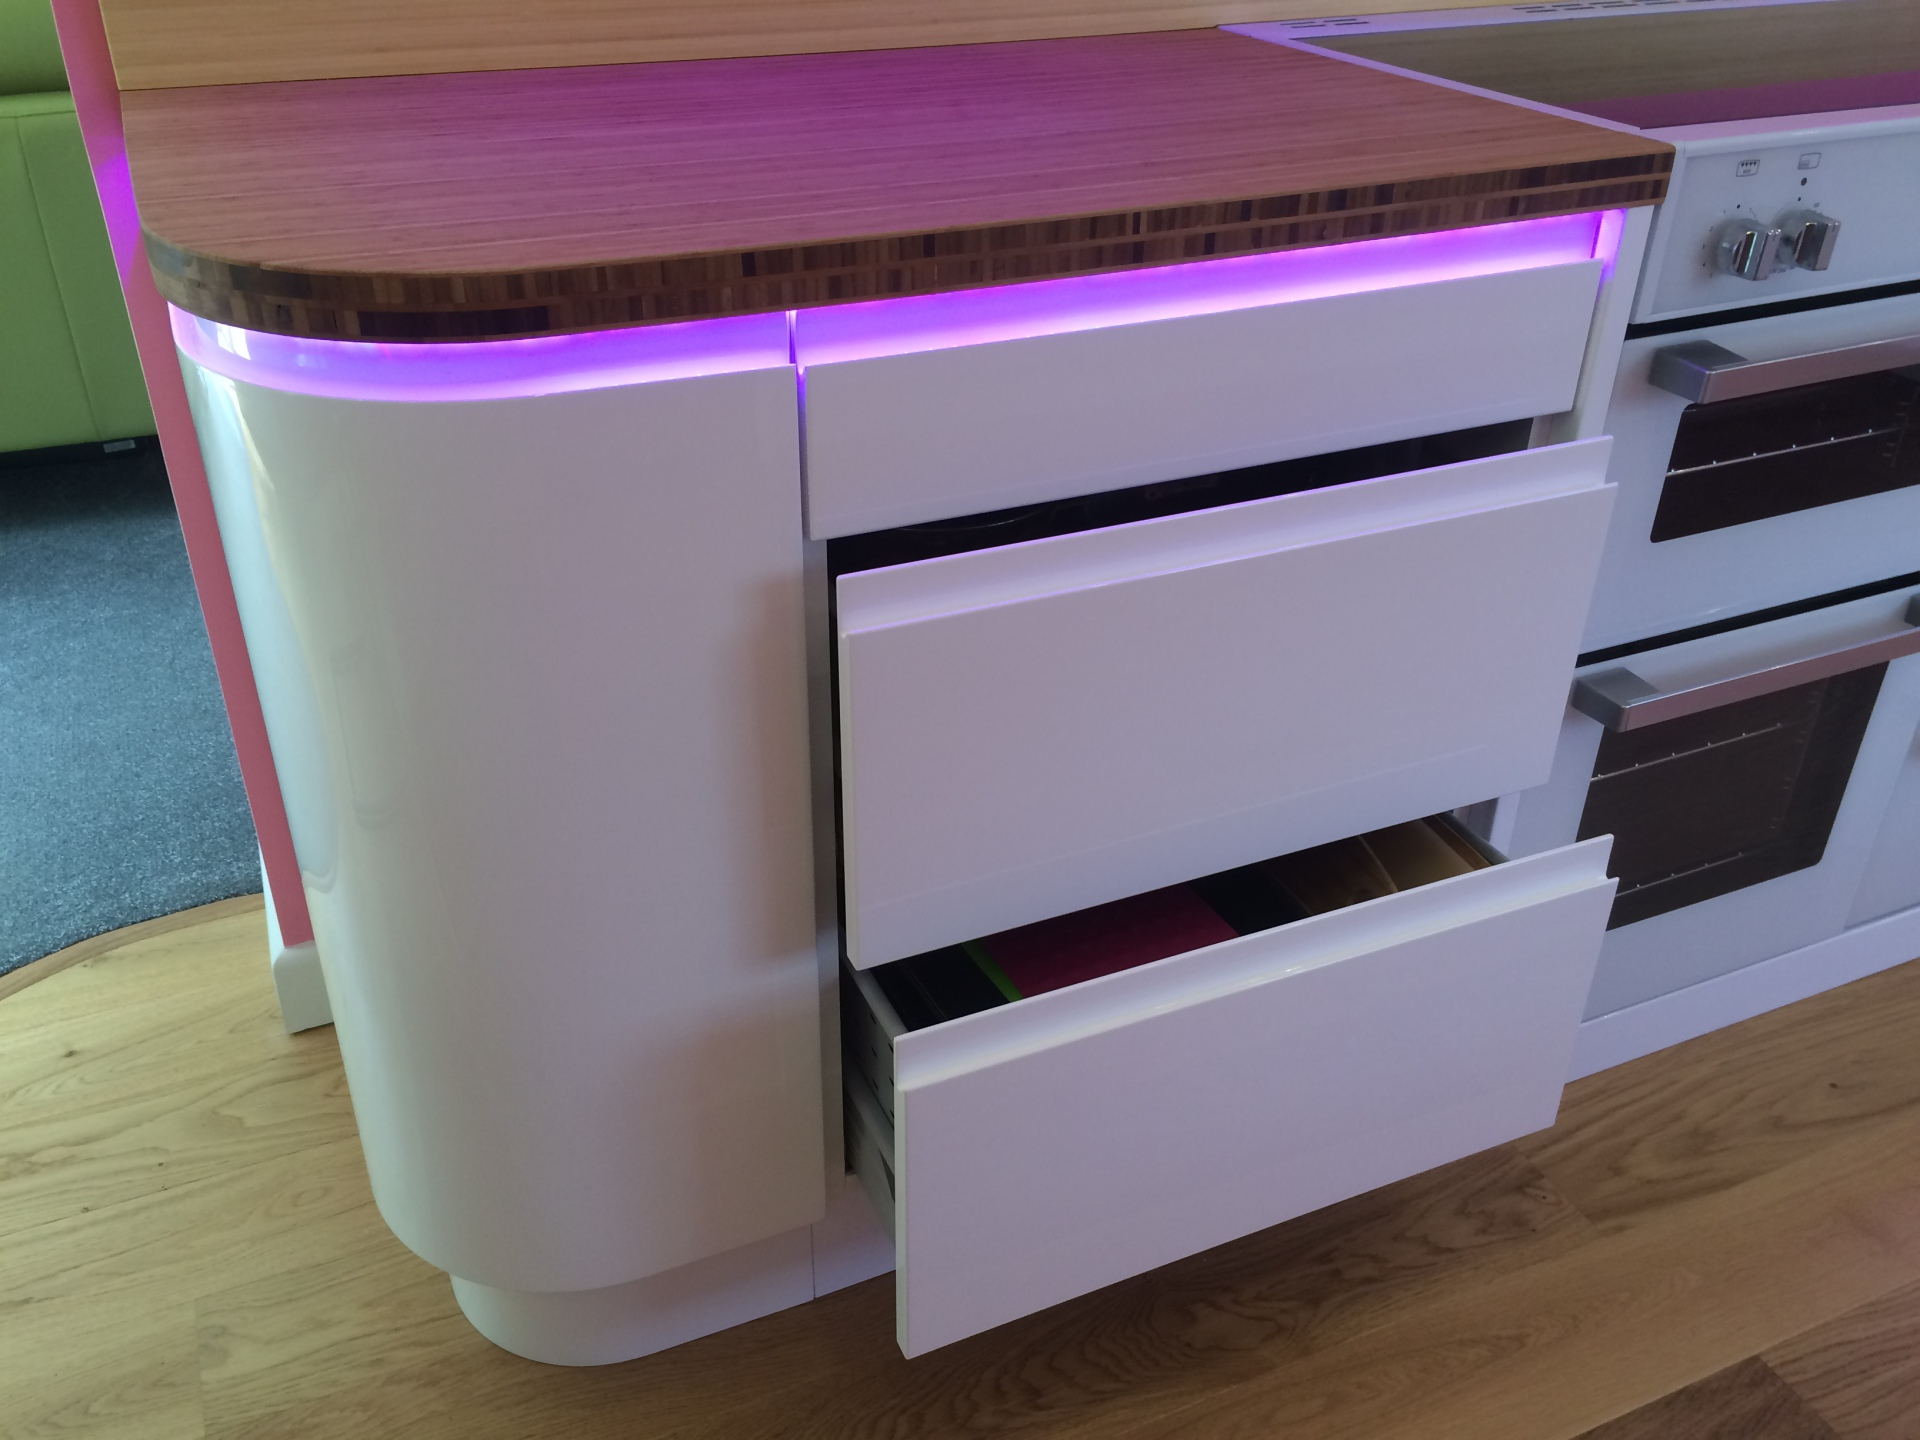 Super smooth kitchen cabinets and pink LED lighting